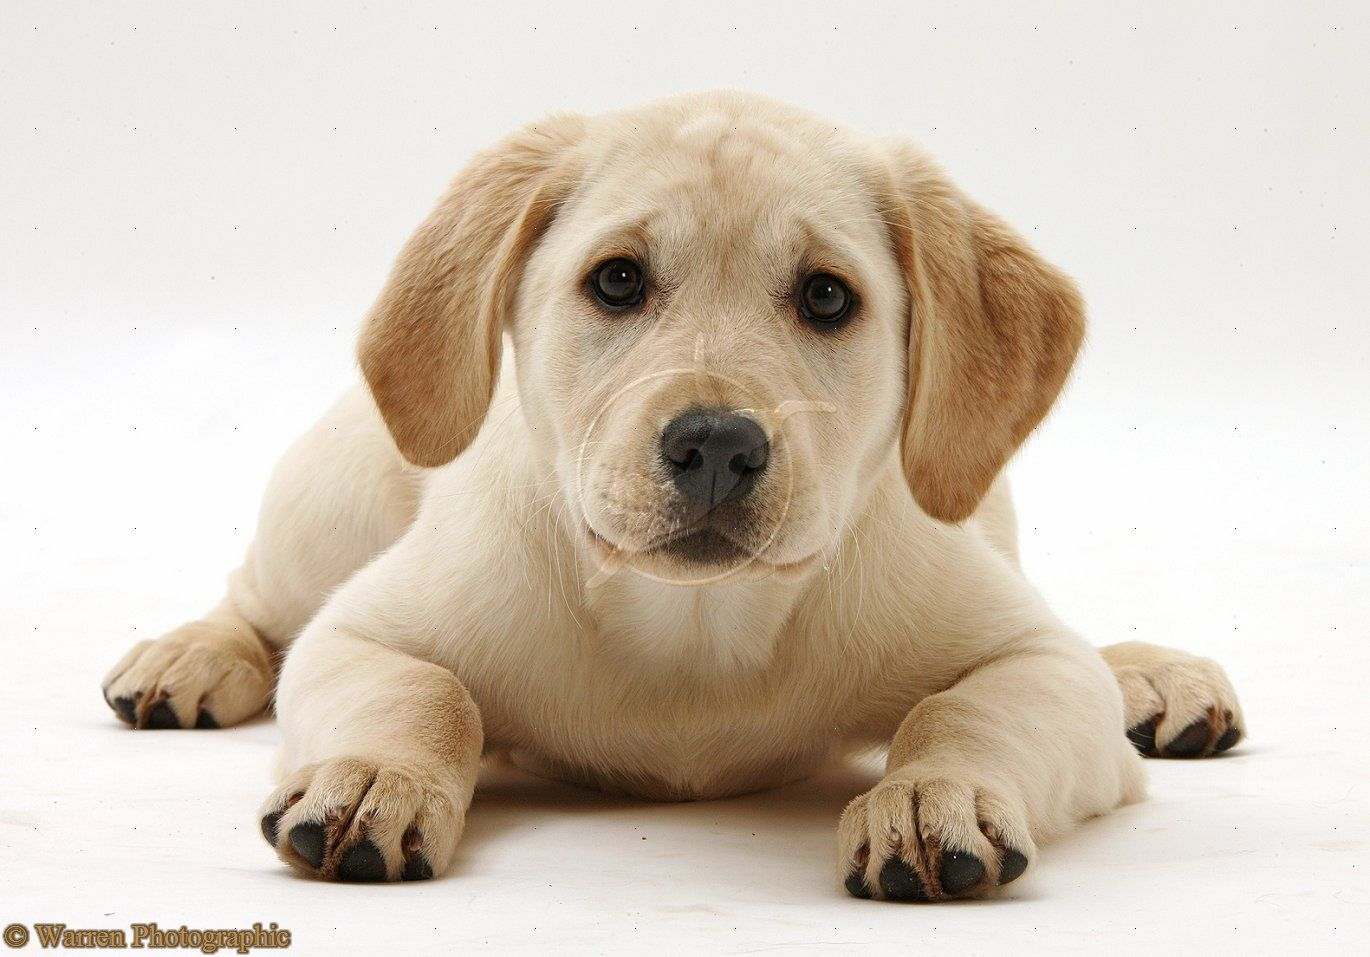 Labrador Retriever puppies and dogs for sale and adoption is part